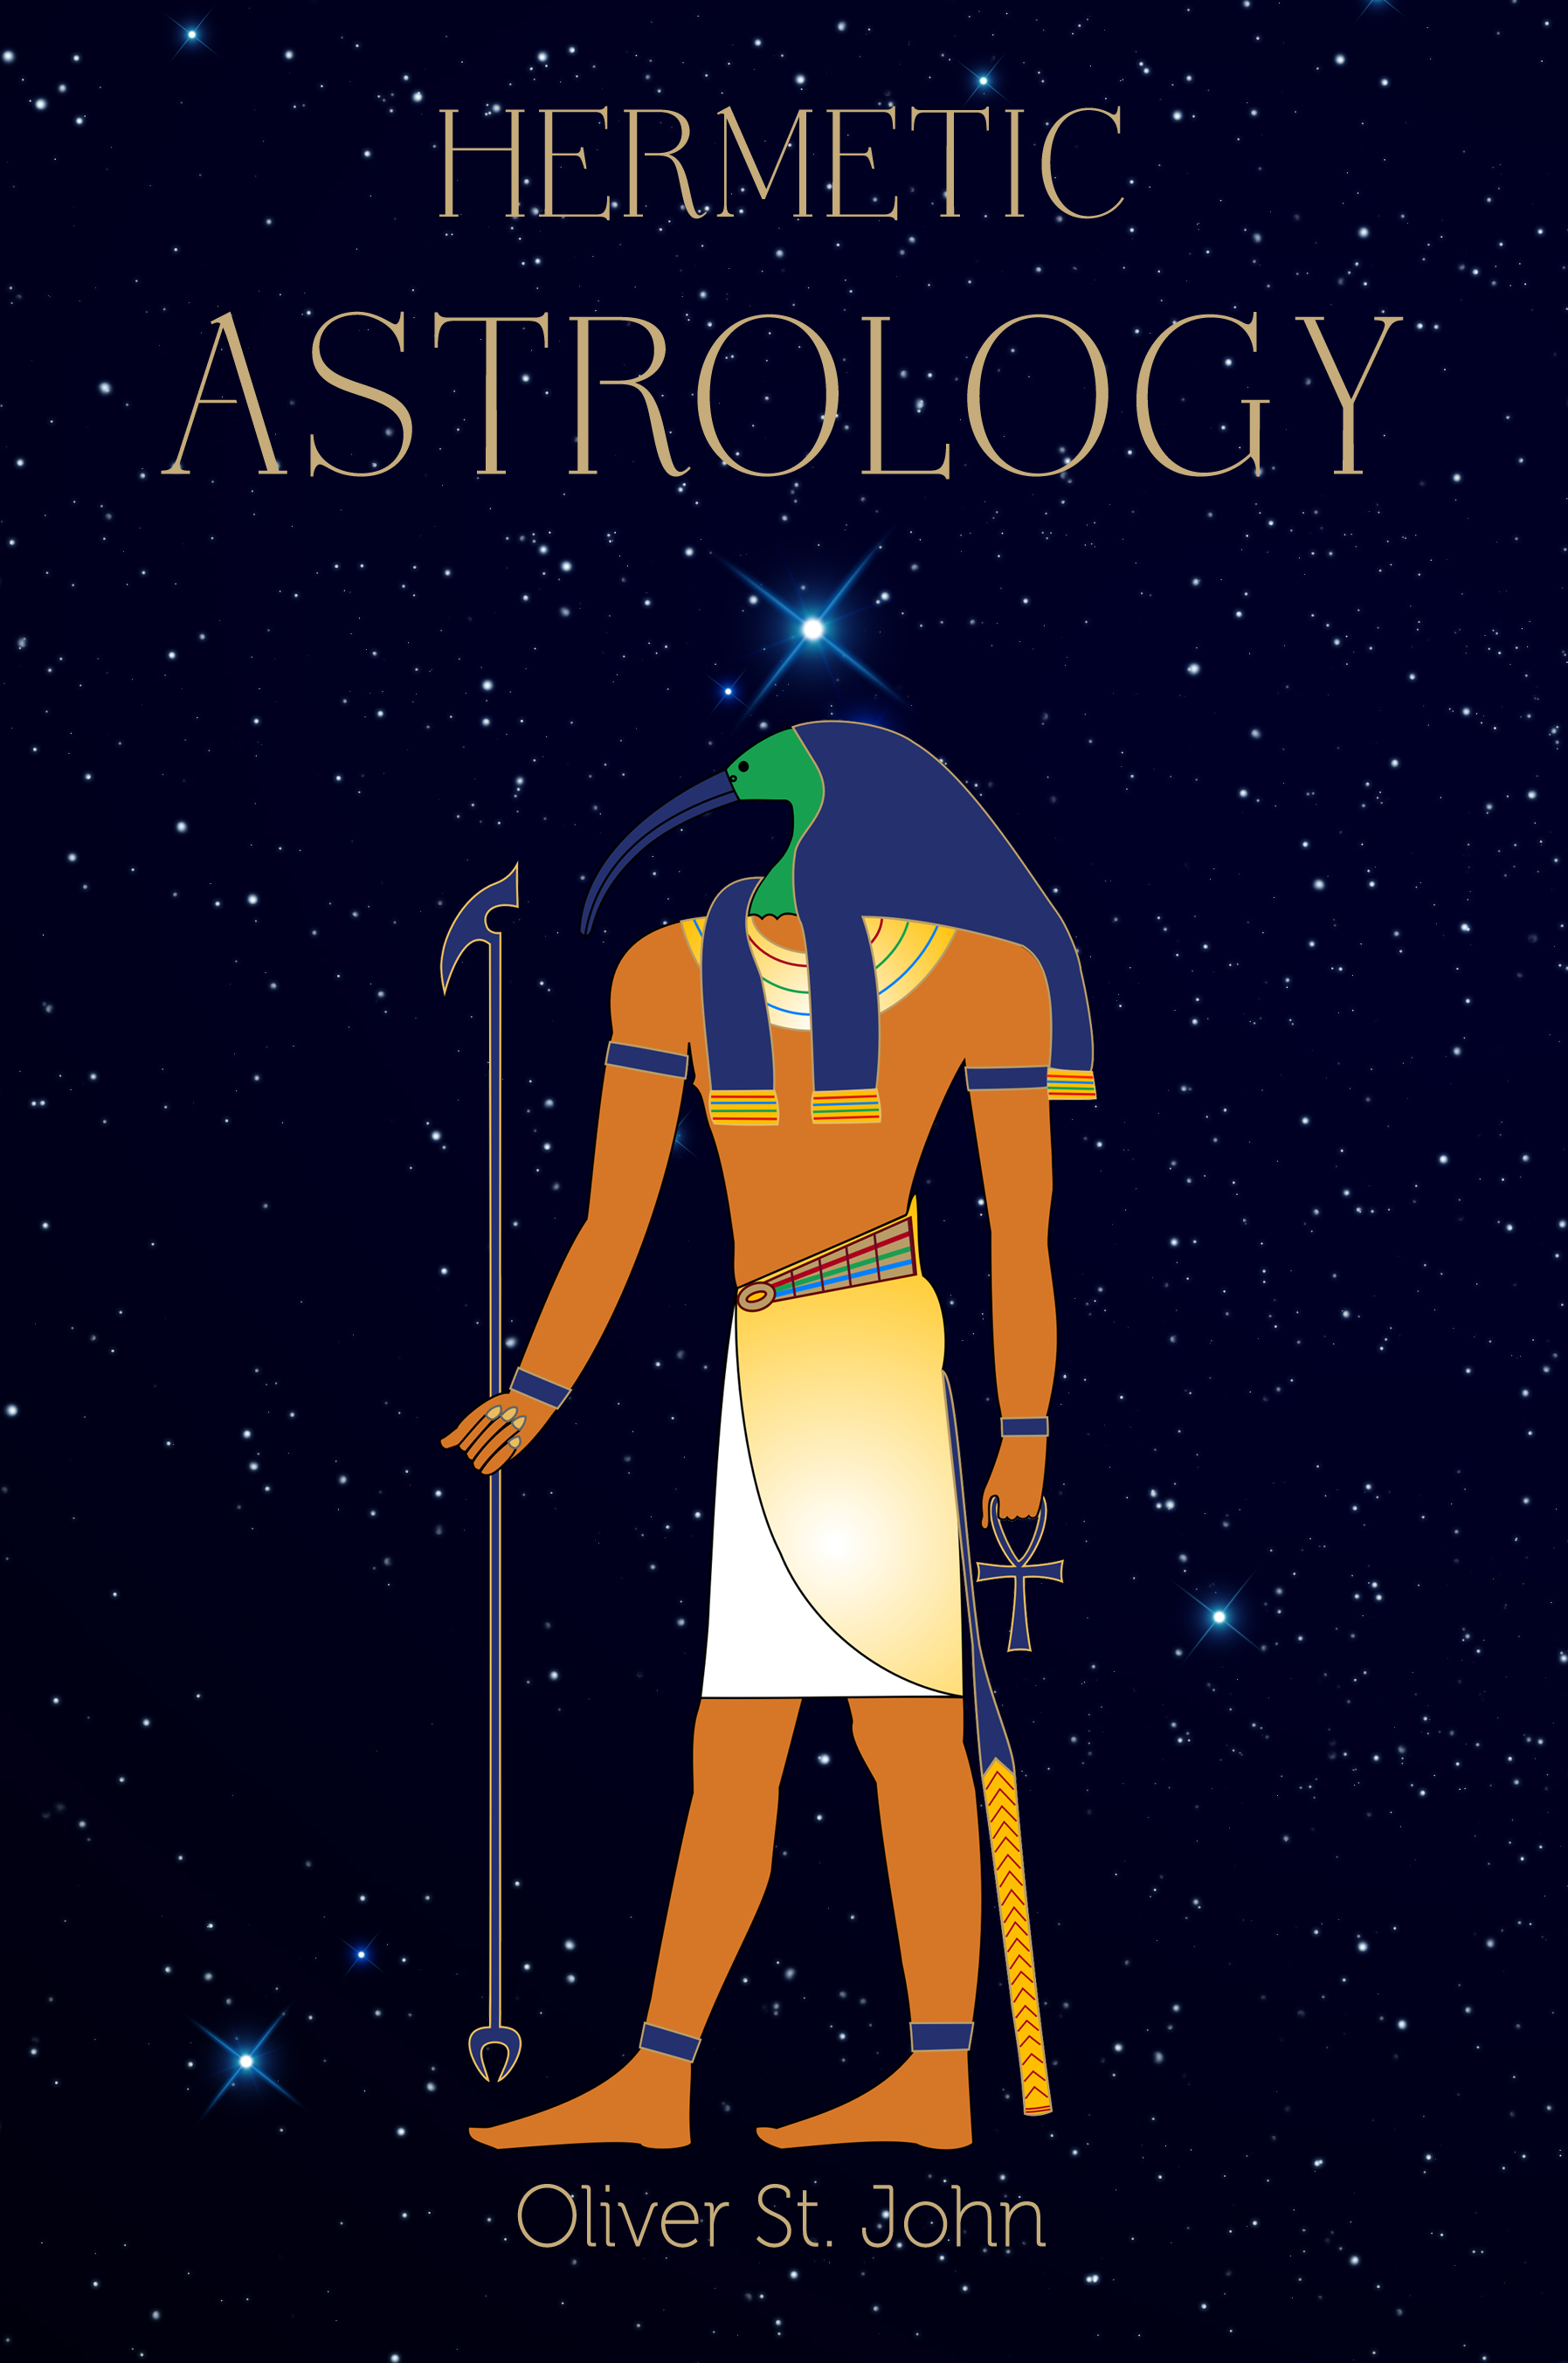 Hermetic Astrology cover art